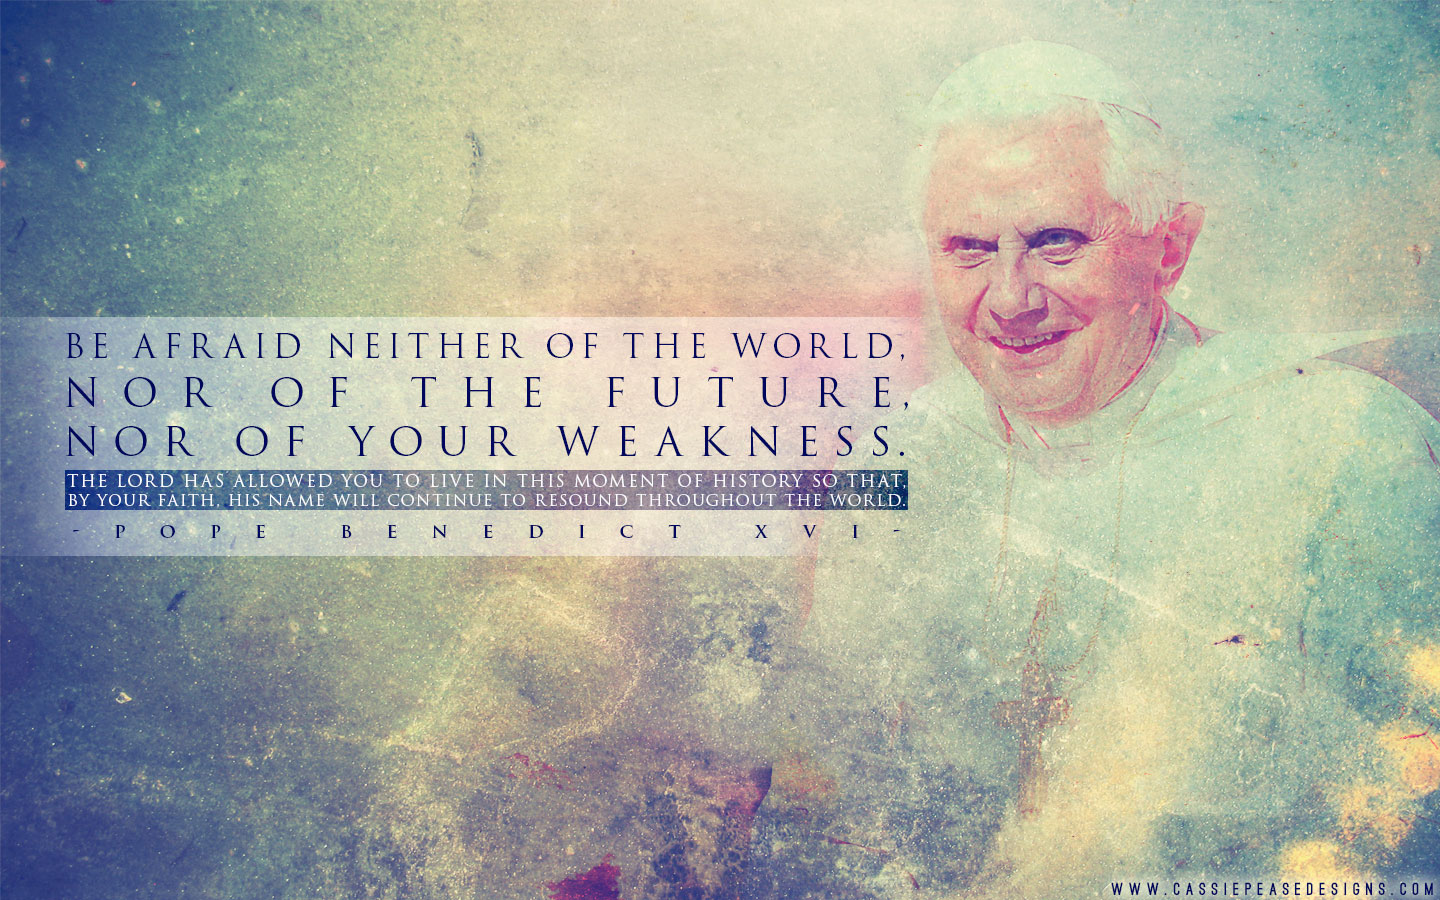 Beautiful Wallpaper With Quotes For Facebook Pope Benedict Xvi Weakness Desktop Wallpaper Cassie